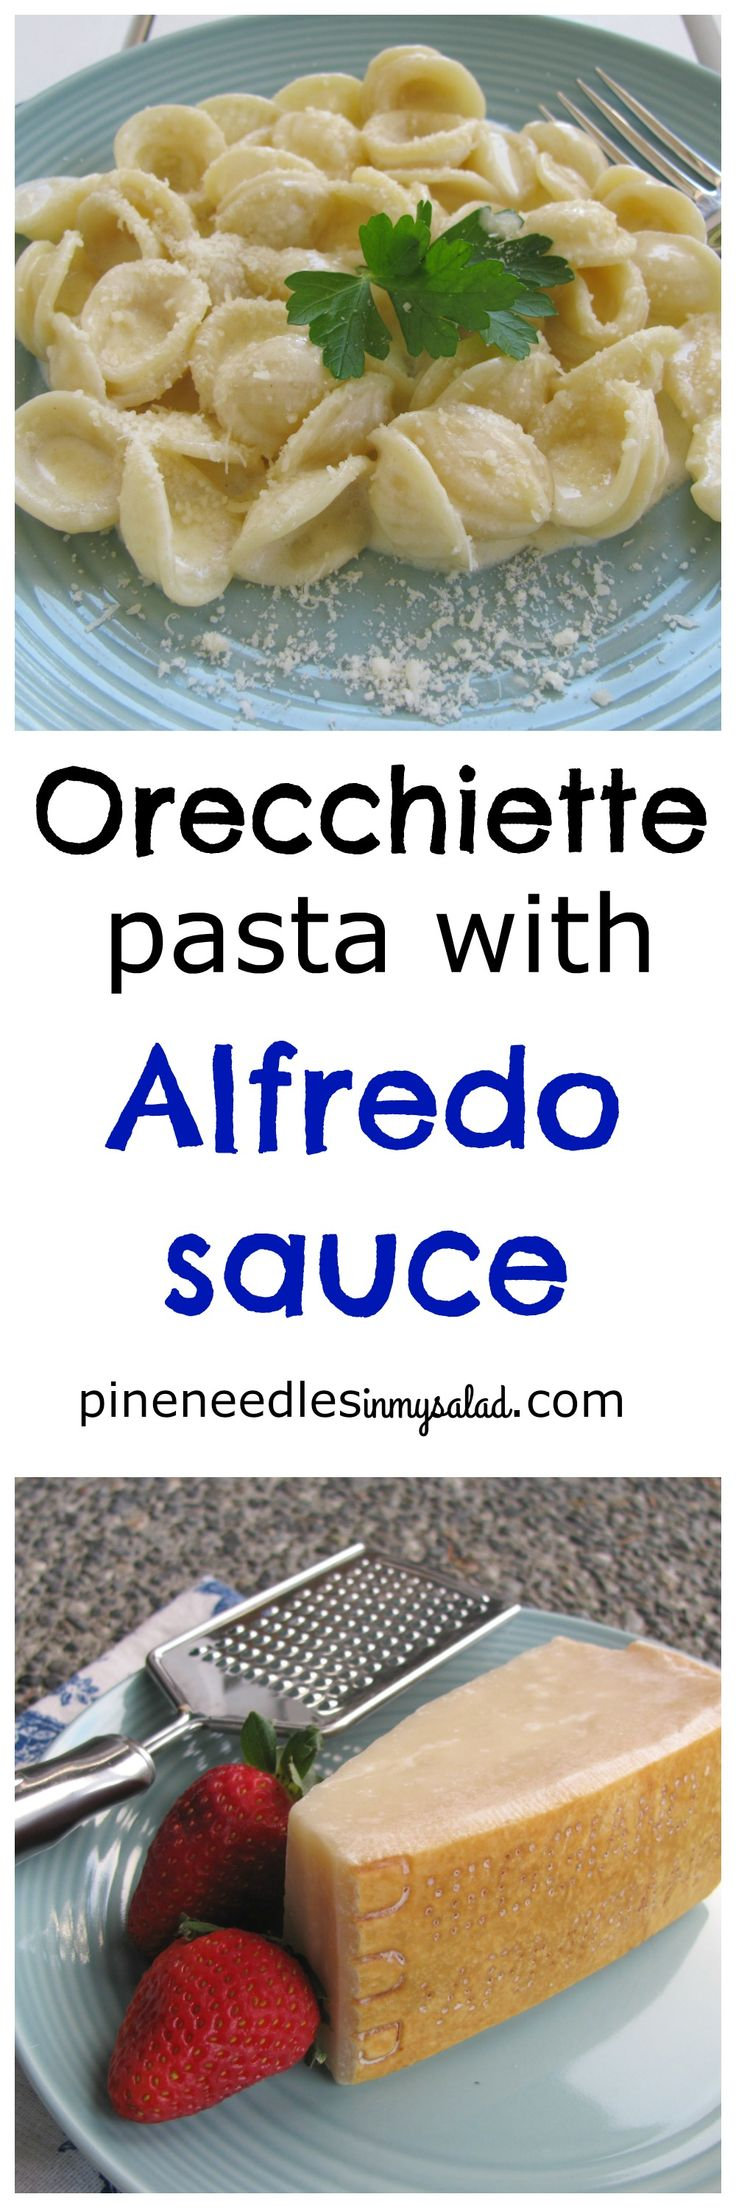 This family favorite is rich, creamy and cheesy. Your kids will love orecchiette…